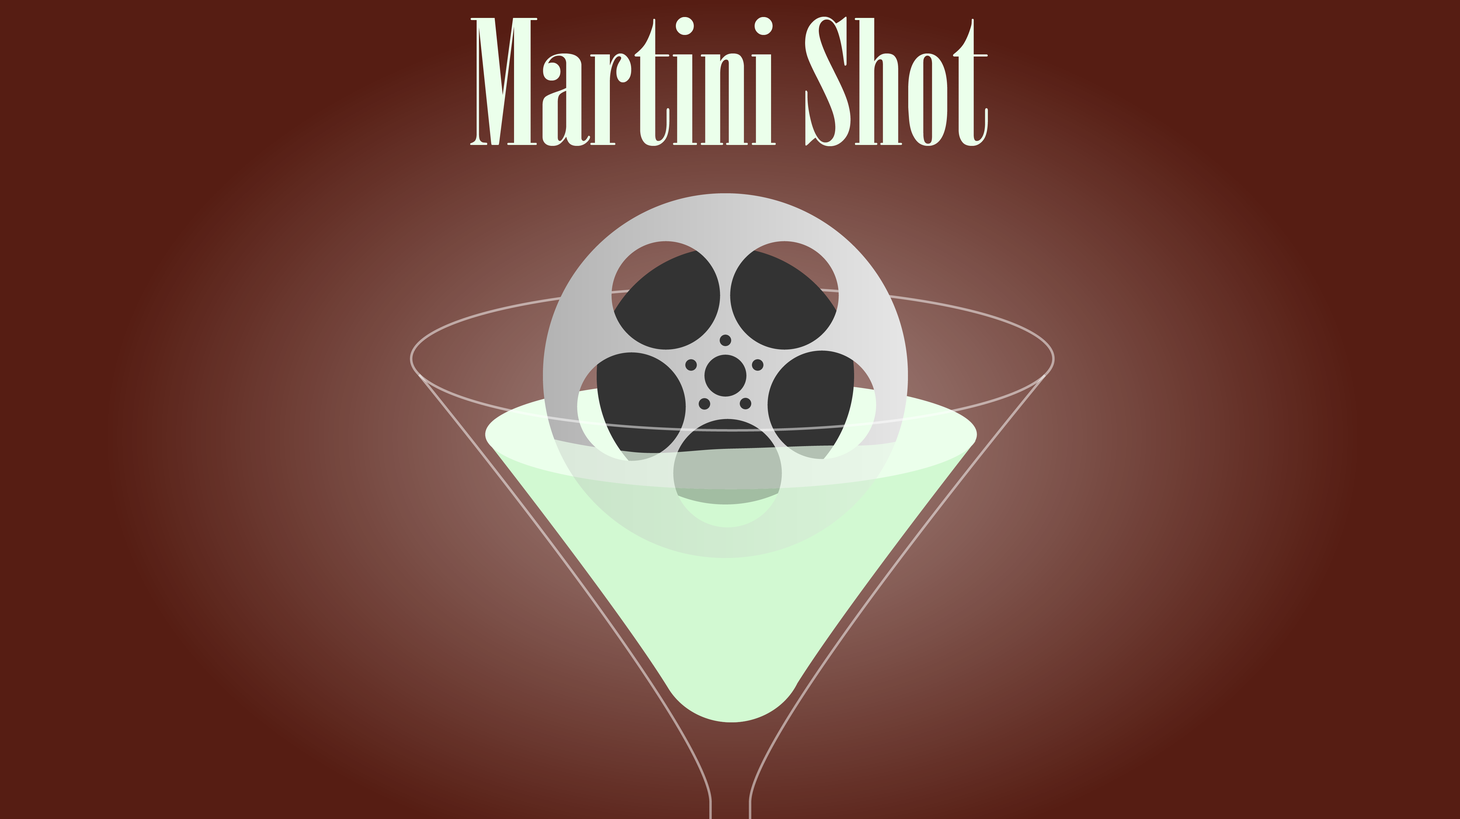 This is Rob Long, and on today's Martini Shot I use a very grim battlefield metaphor to describe the new Best Popular Movie Oscar award, coming in 2019. It's a little dark, but then so is the entertainment business.